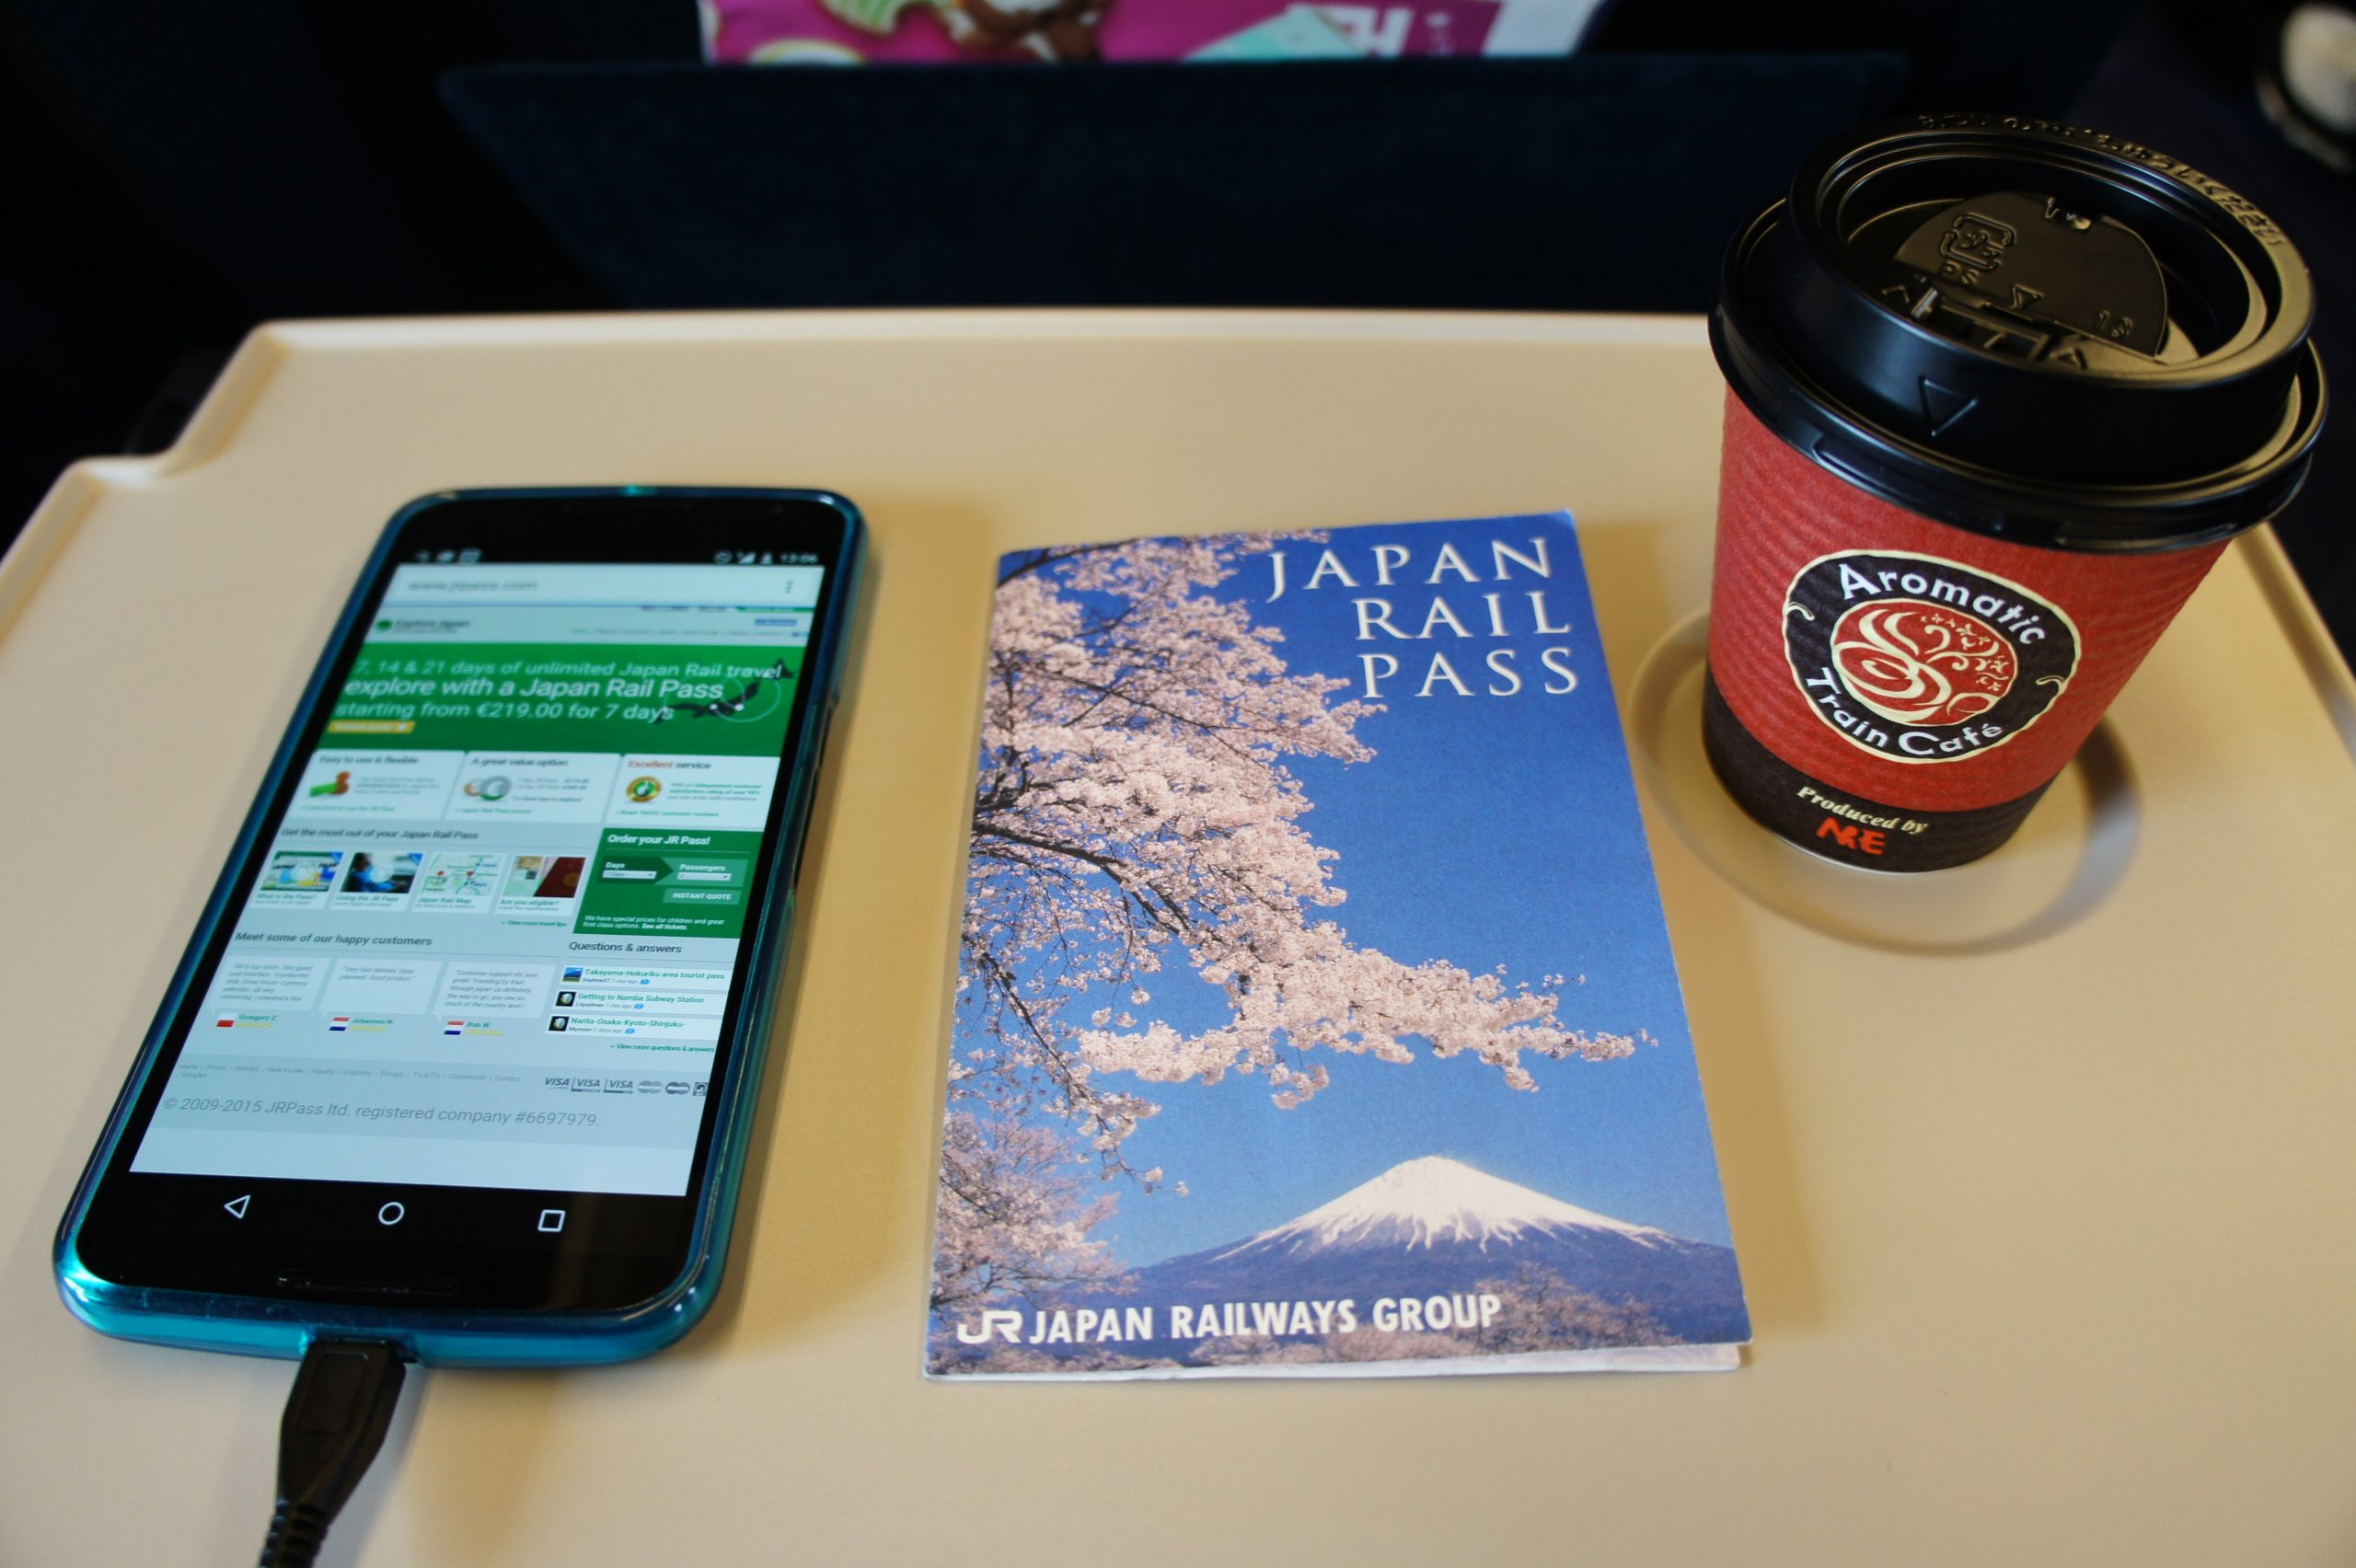 Affiliate Link: JR Pass, Phone and Coffee Cup